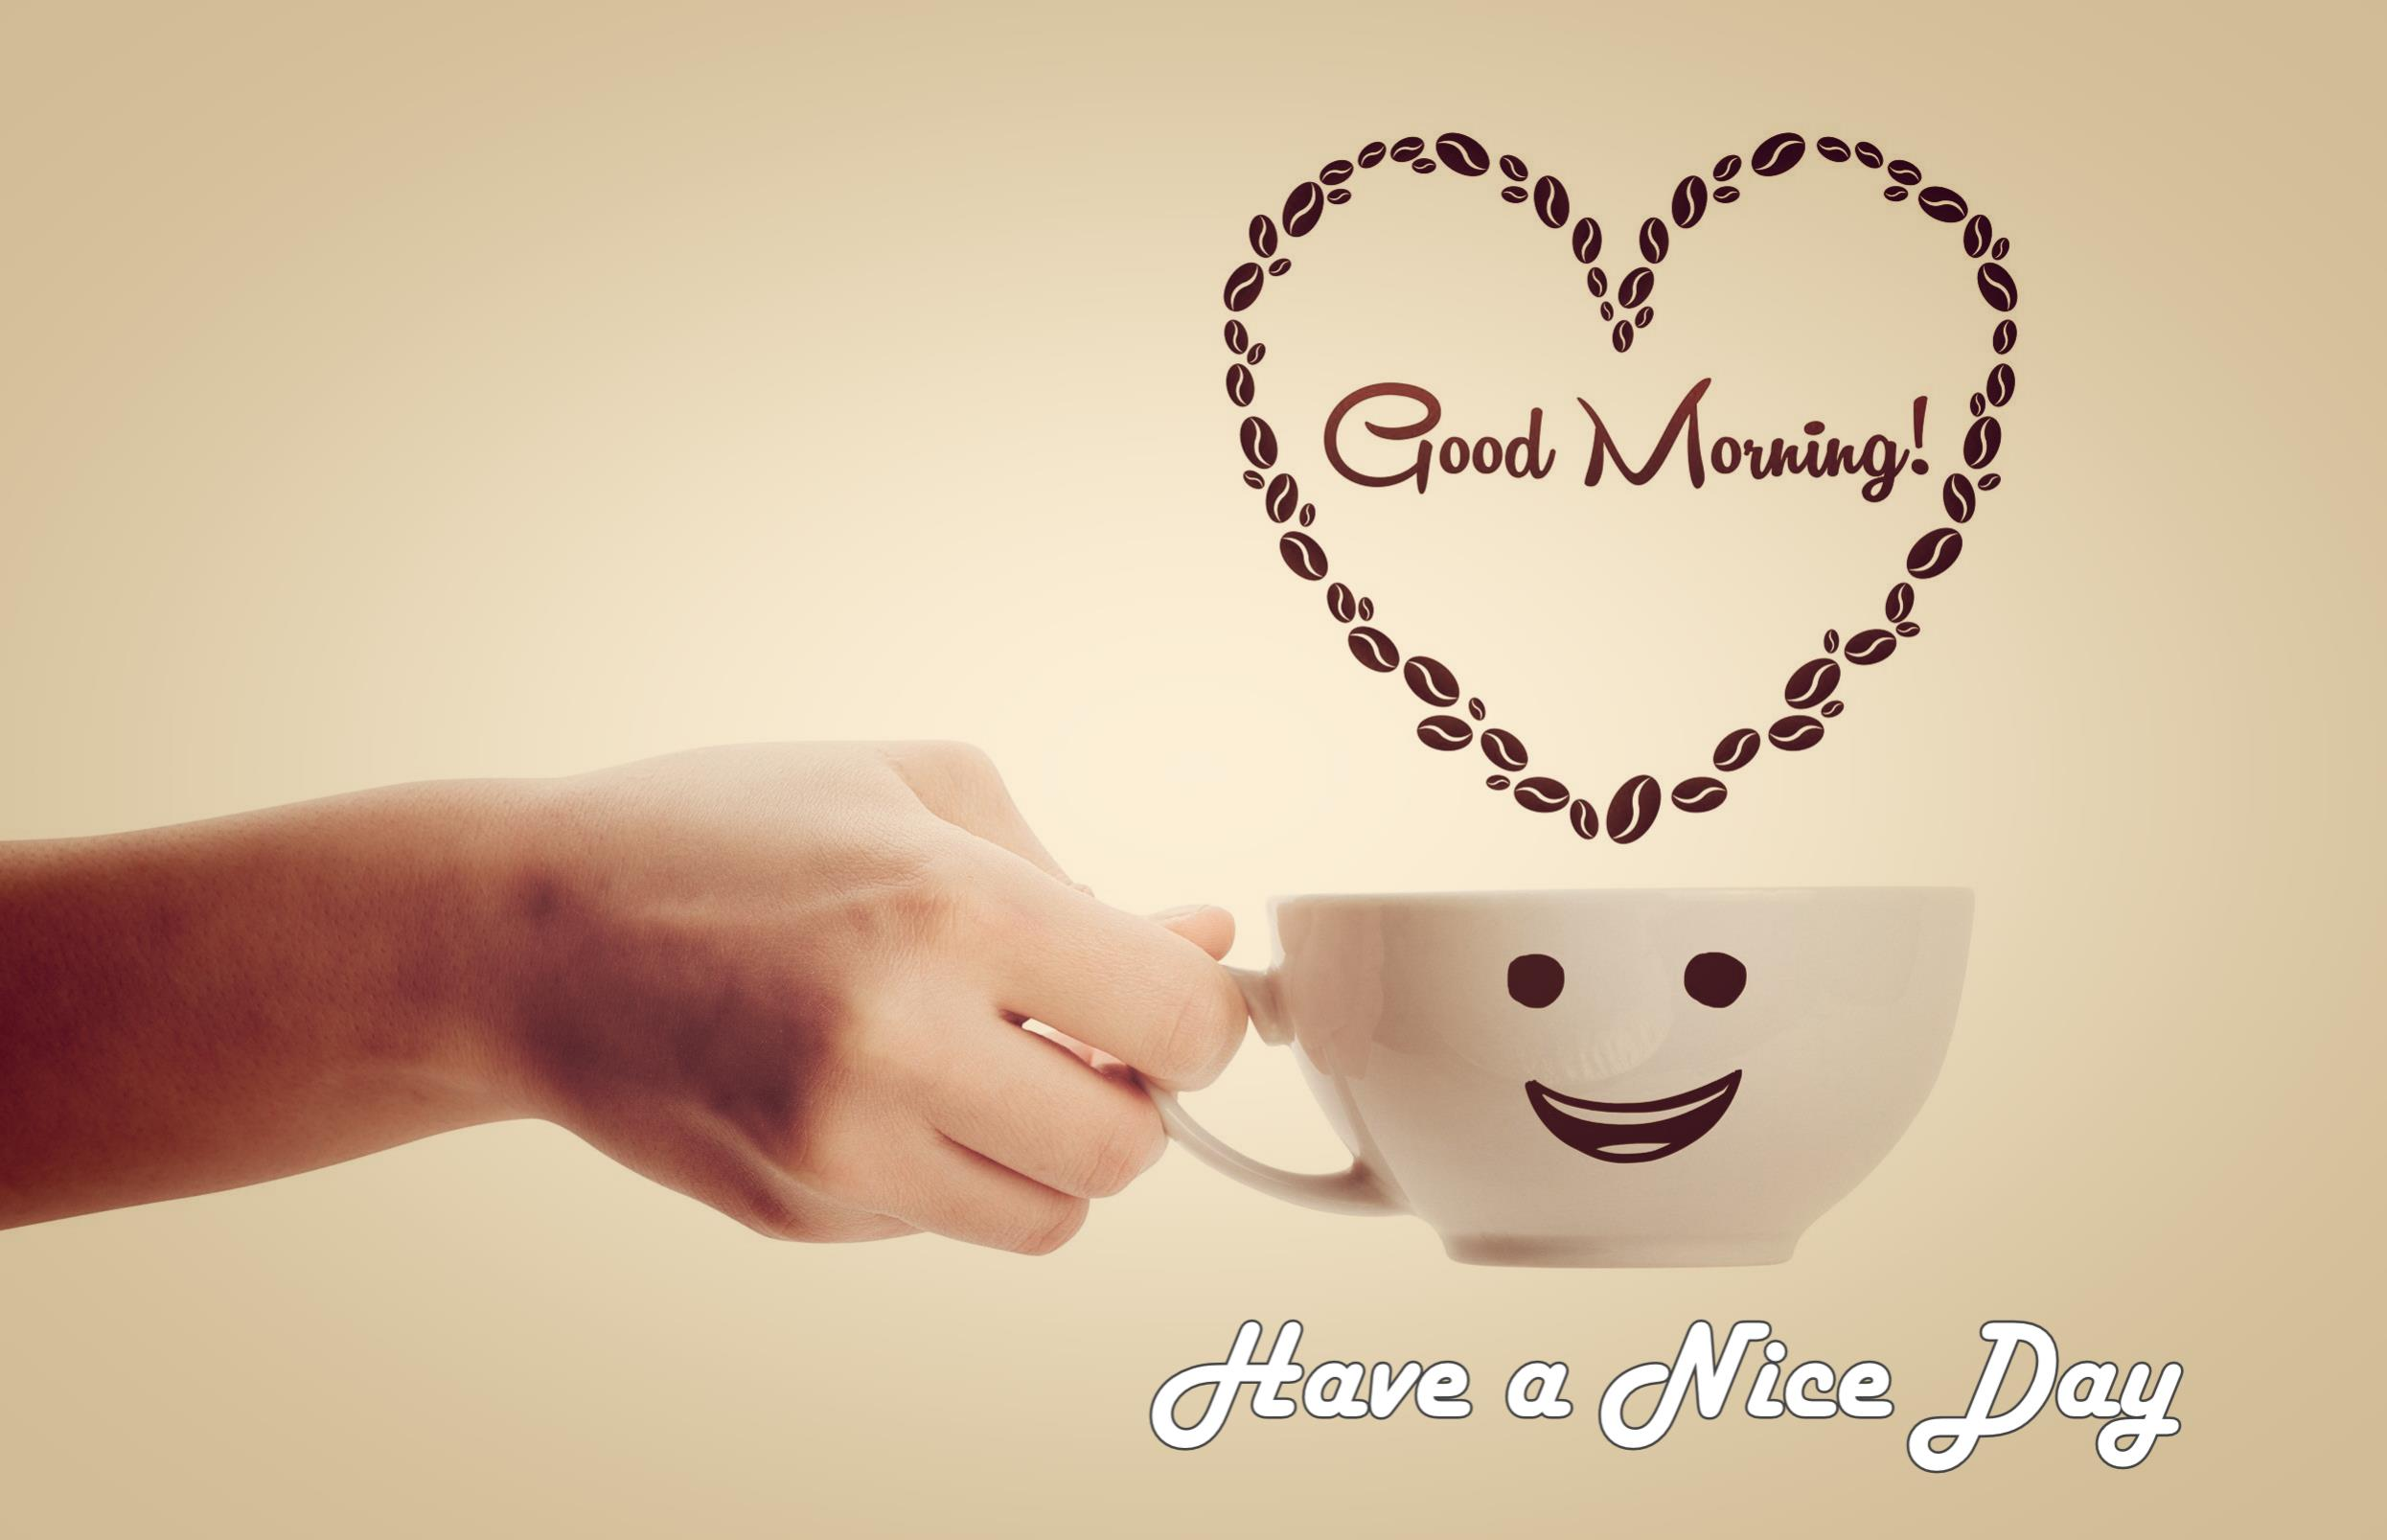 Free download Good Morning Have a Nice Day with Coffee Hd